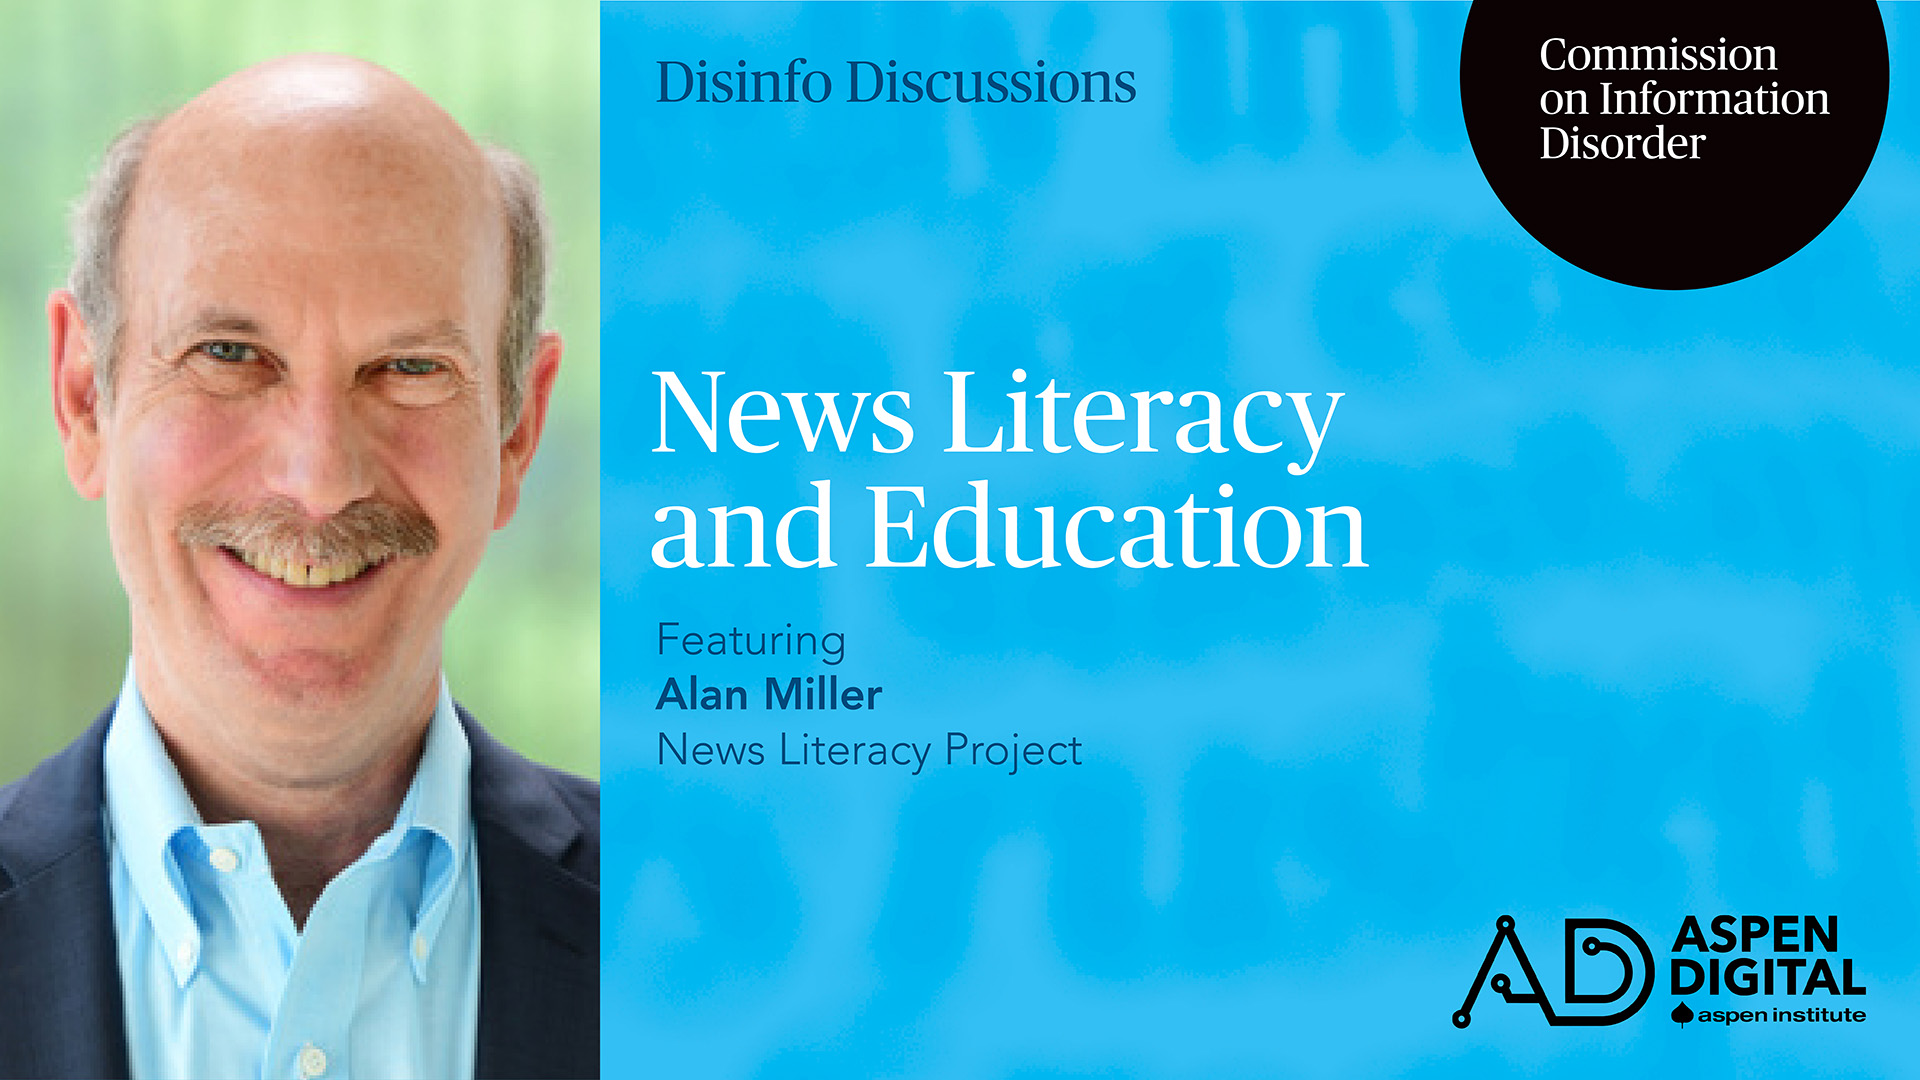 News Literacy and Education